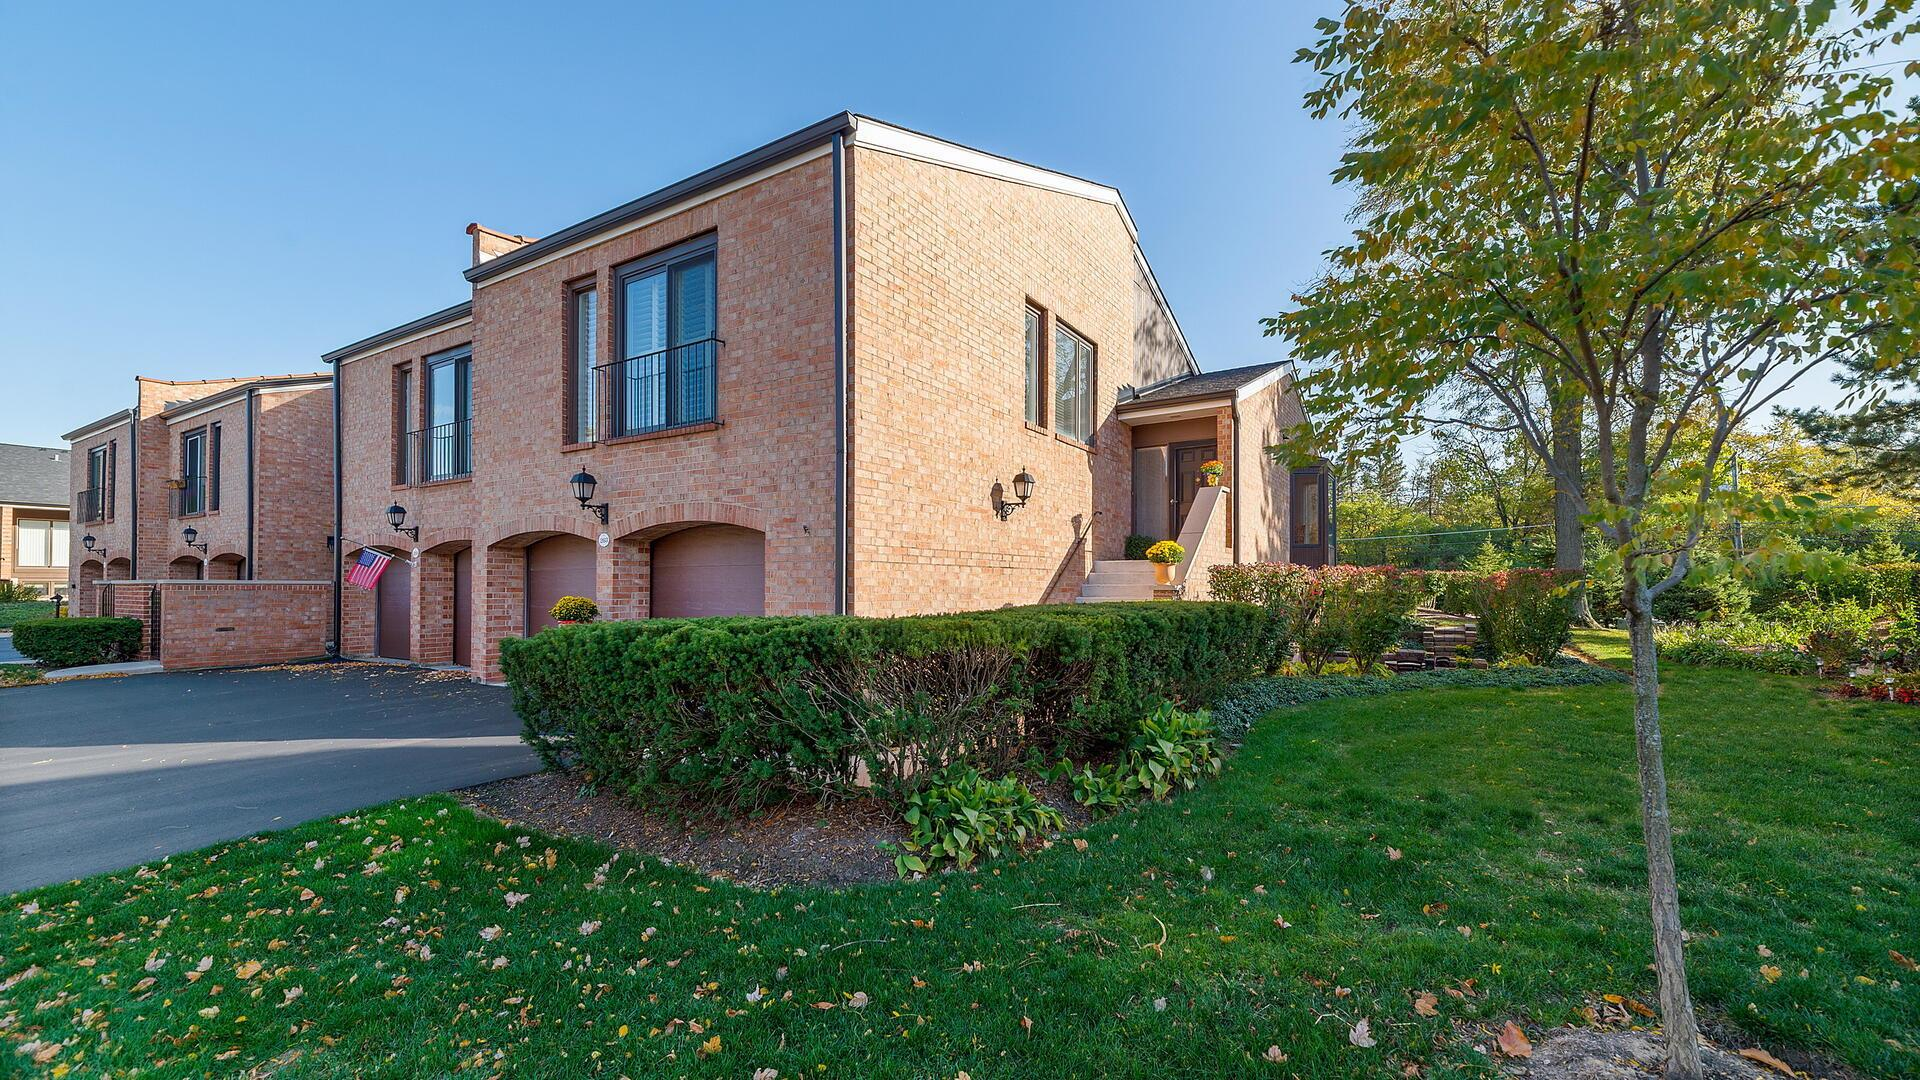 19w263 Governors Trail, Oak Brook, IL 60523 - #: 10896569